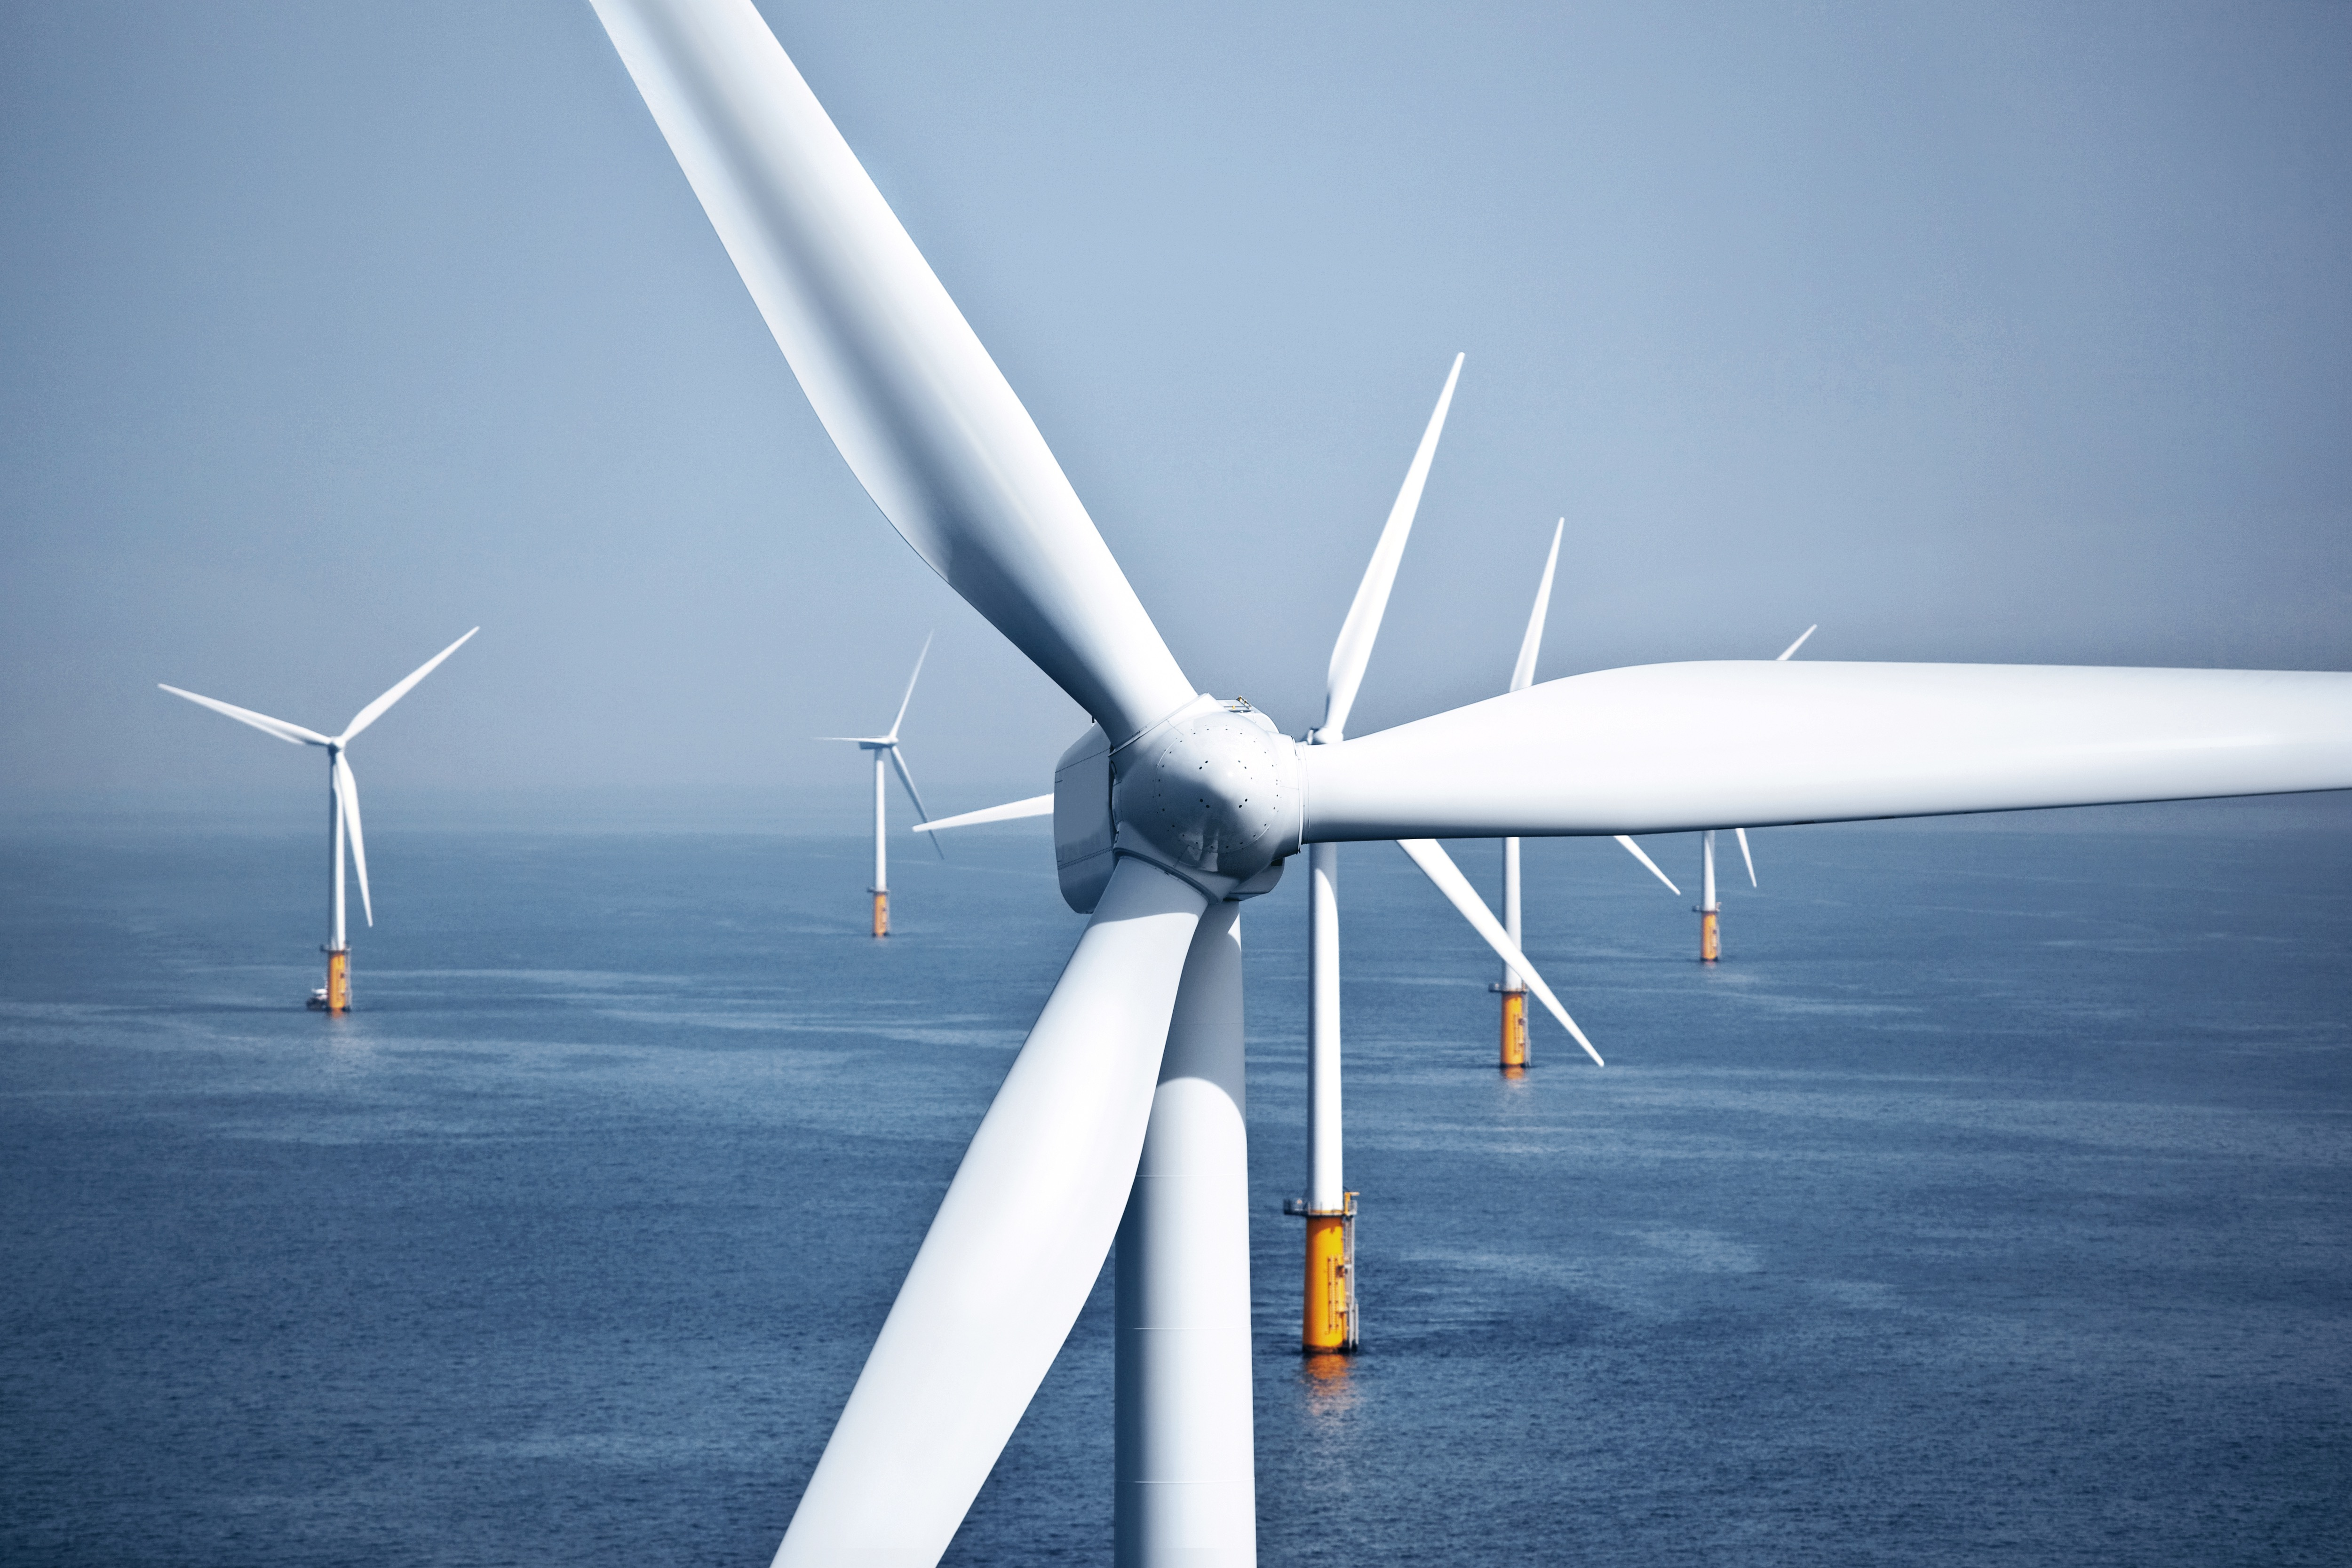 These offshore parks will probably not be able to fill a gap in the electricity grid.